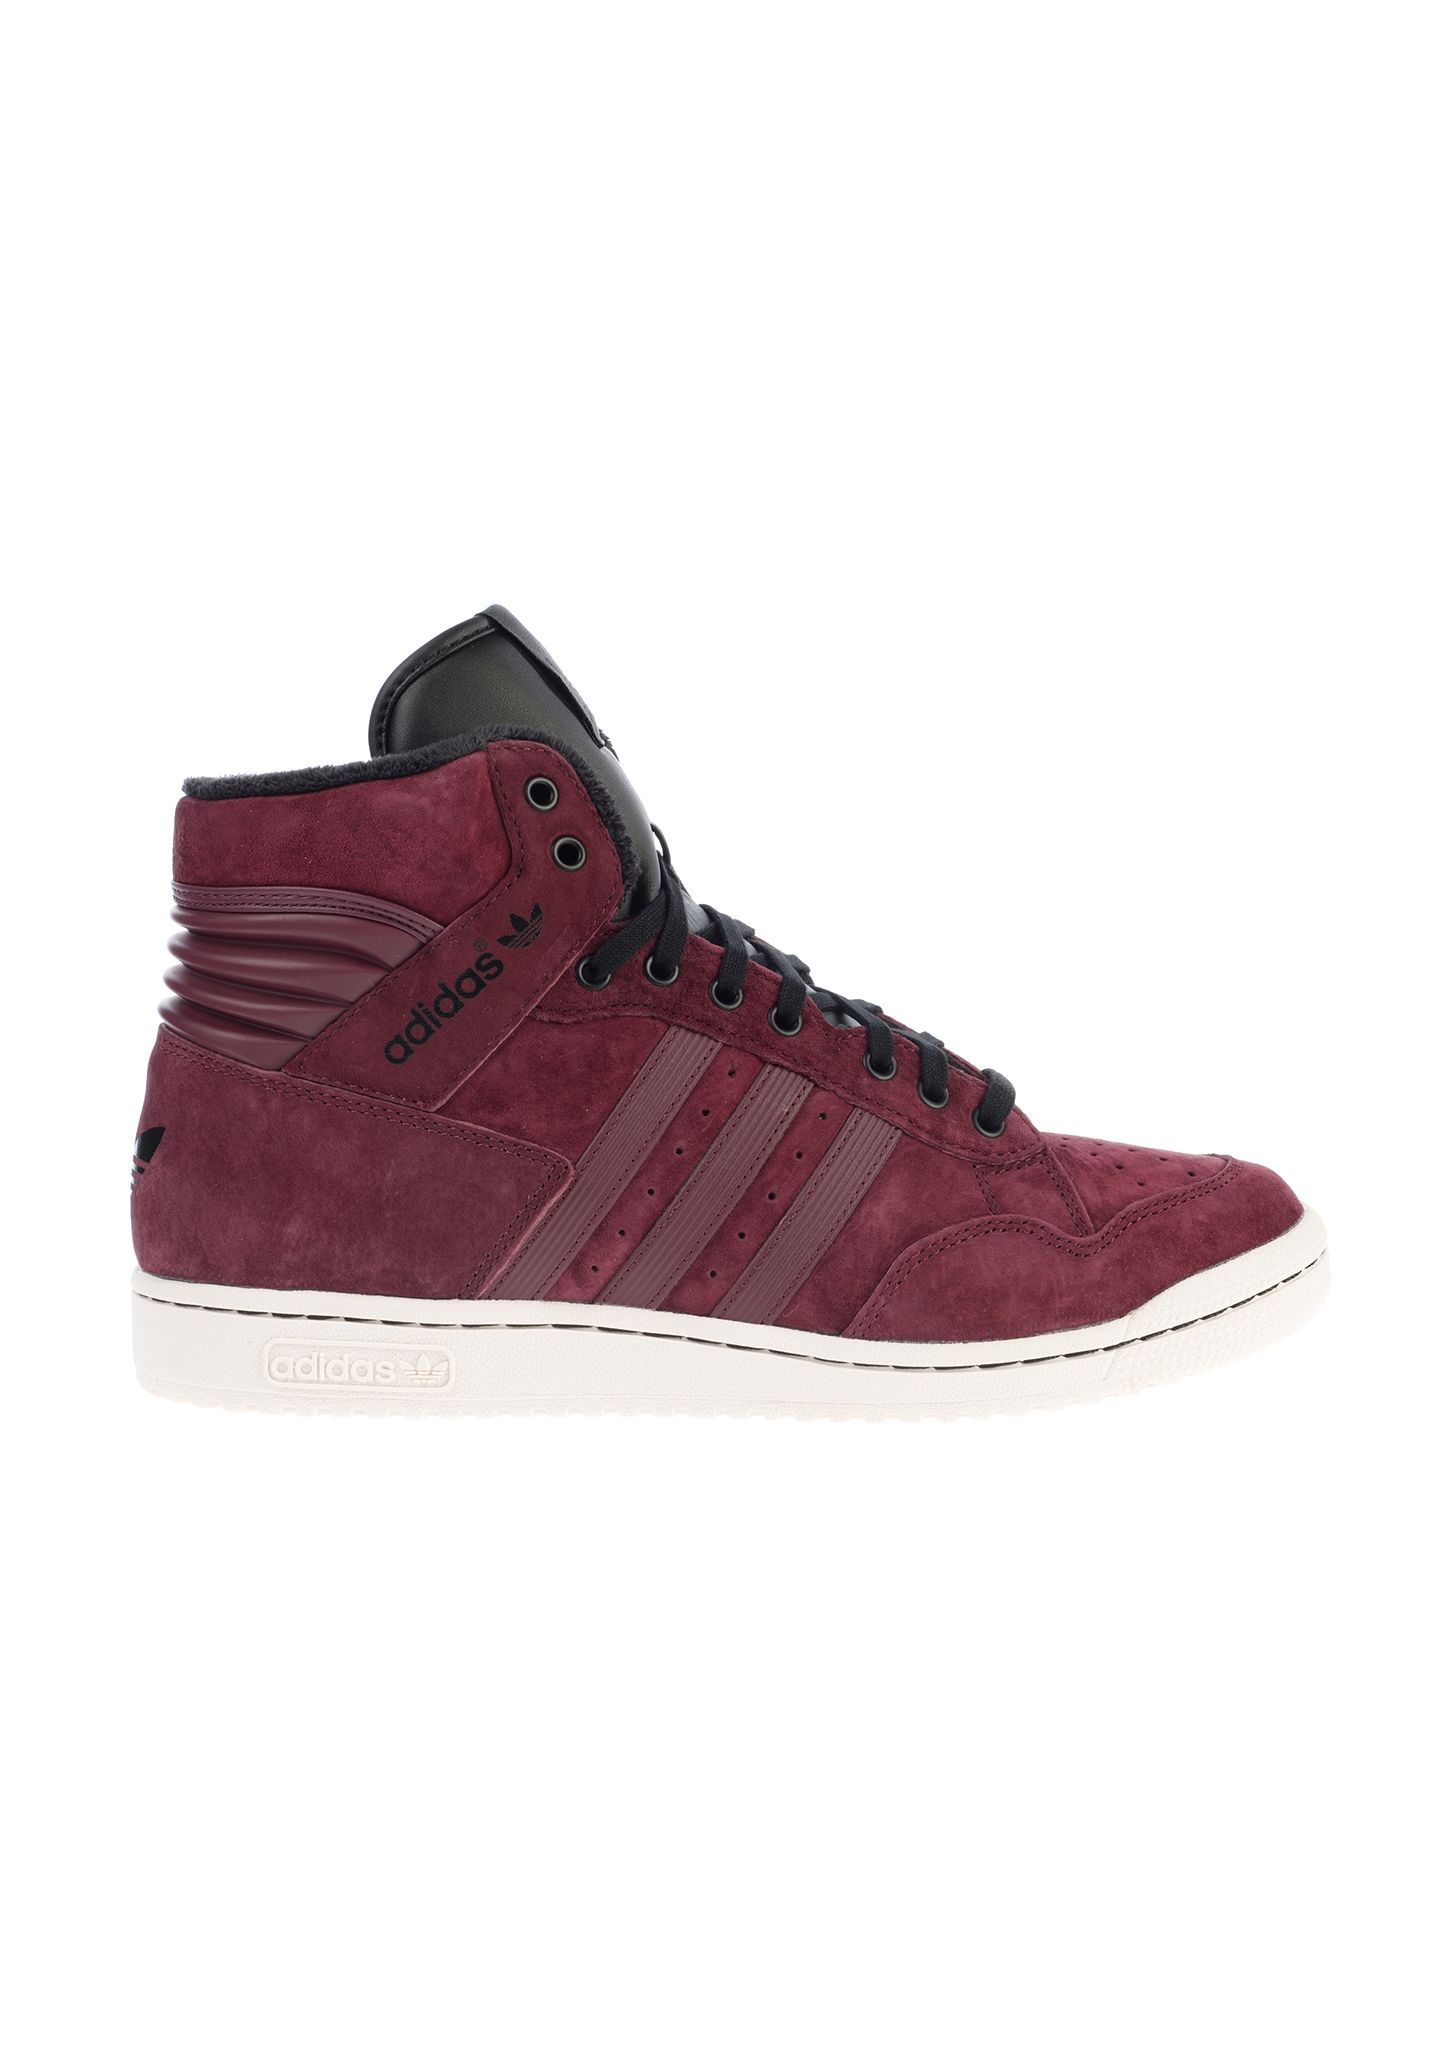 new product 70955 31460 Adidas Hi Pro Für Rot Conference Stiefel Originals Herren A6